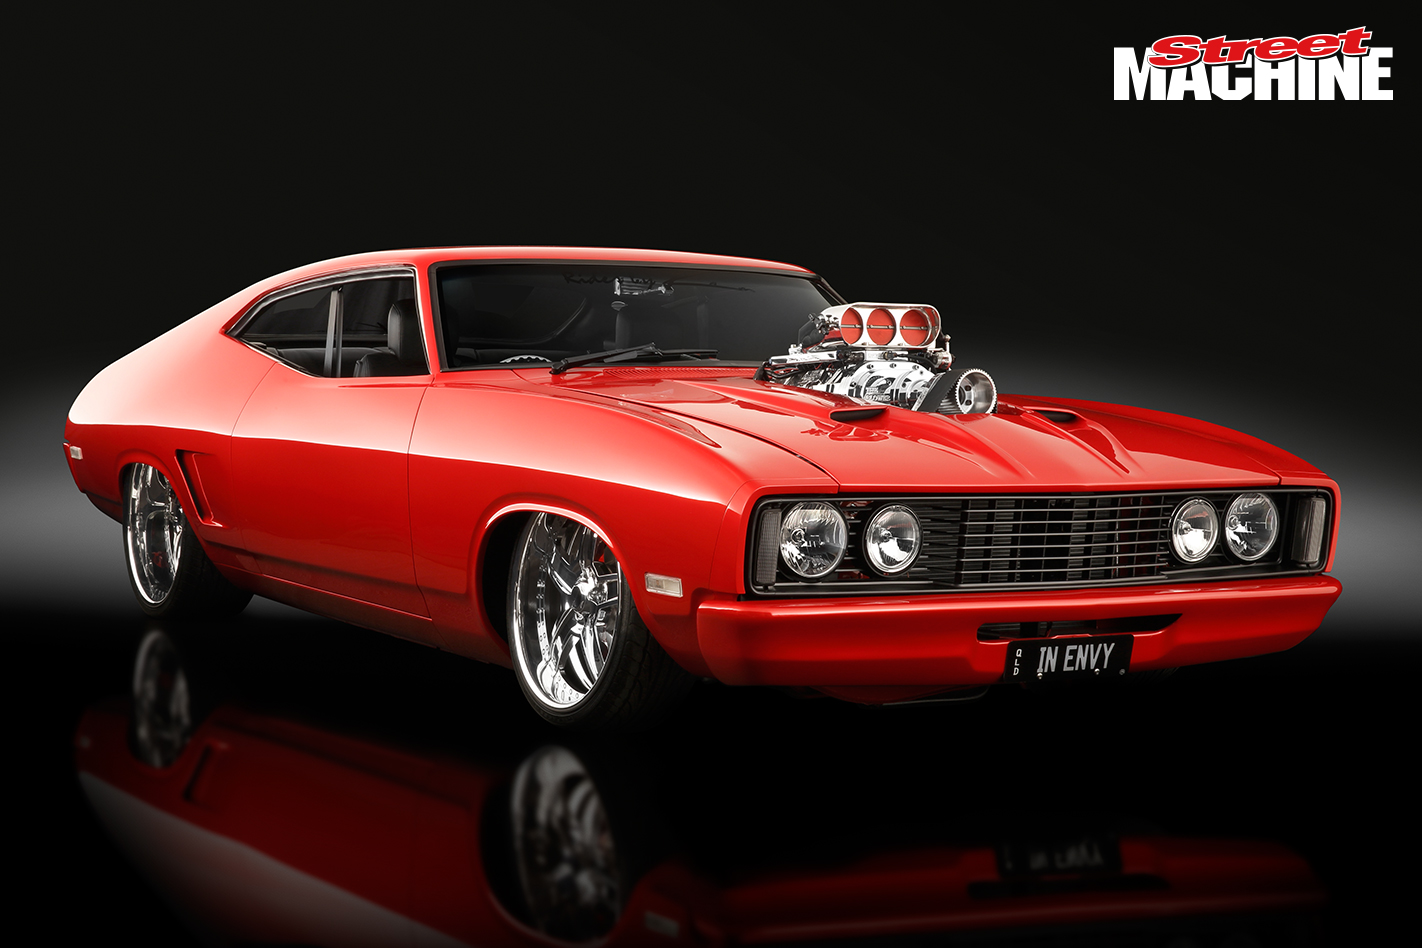 Blown 351 Powered Ford Xc Falcon Coupe Inenvy Street